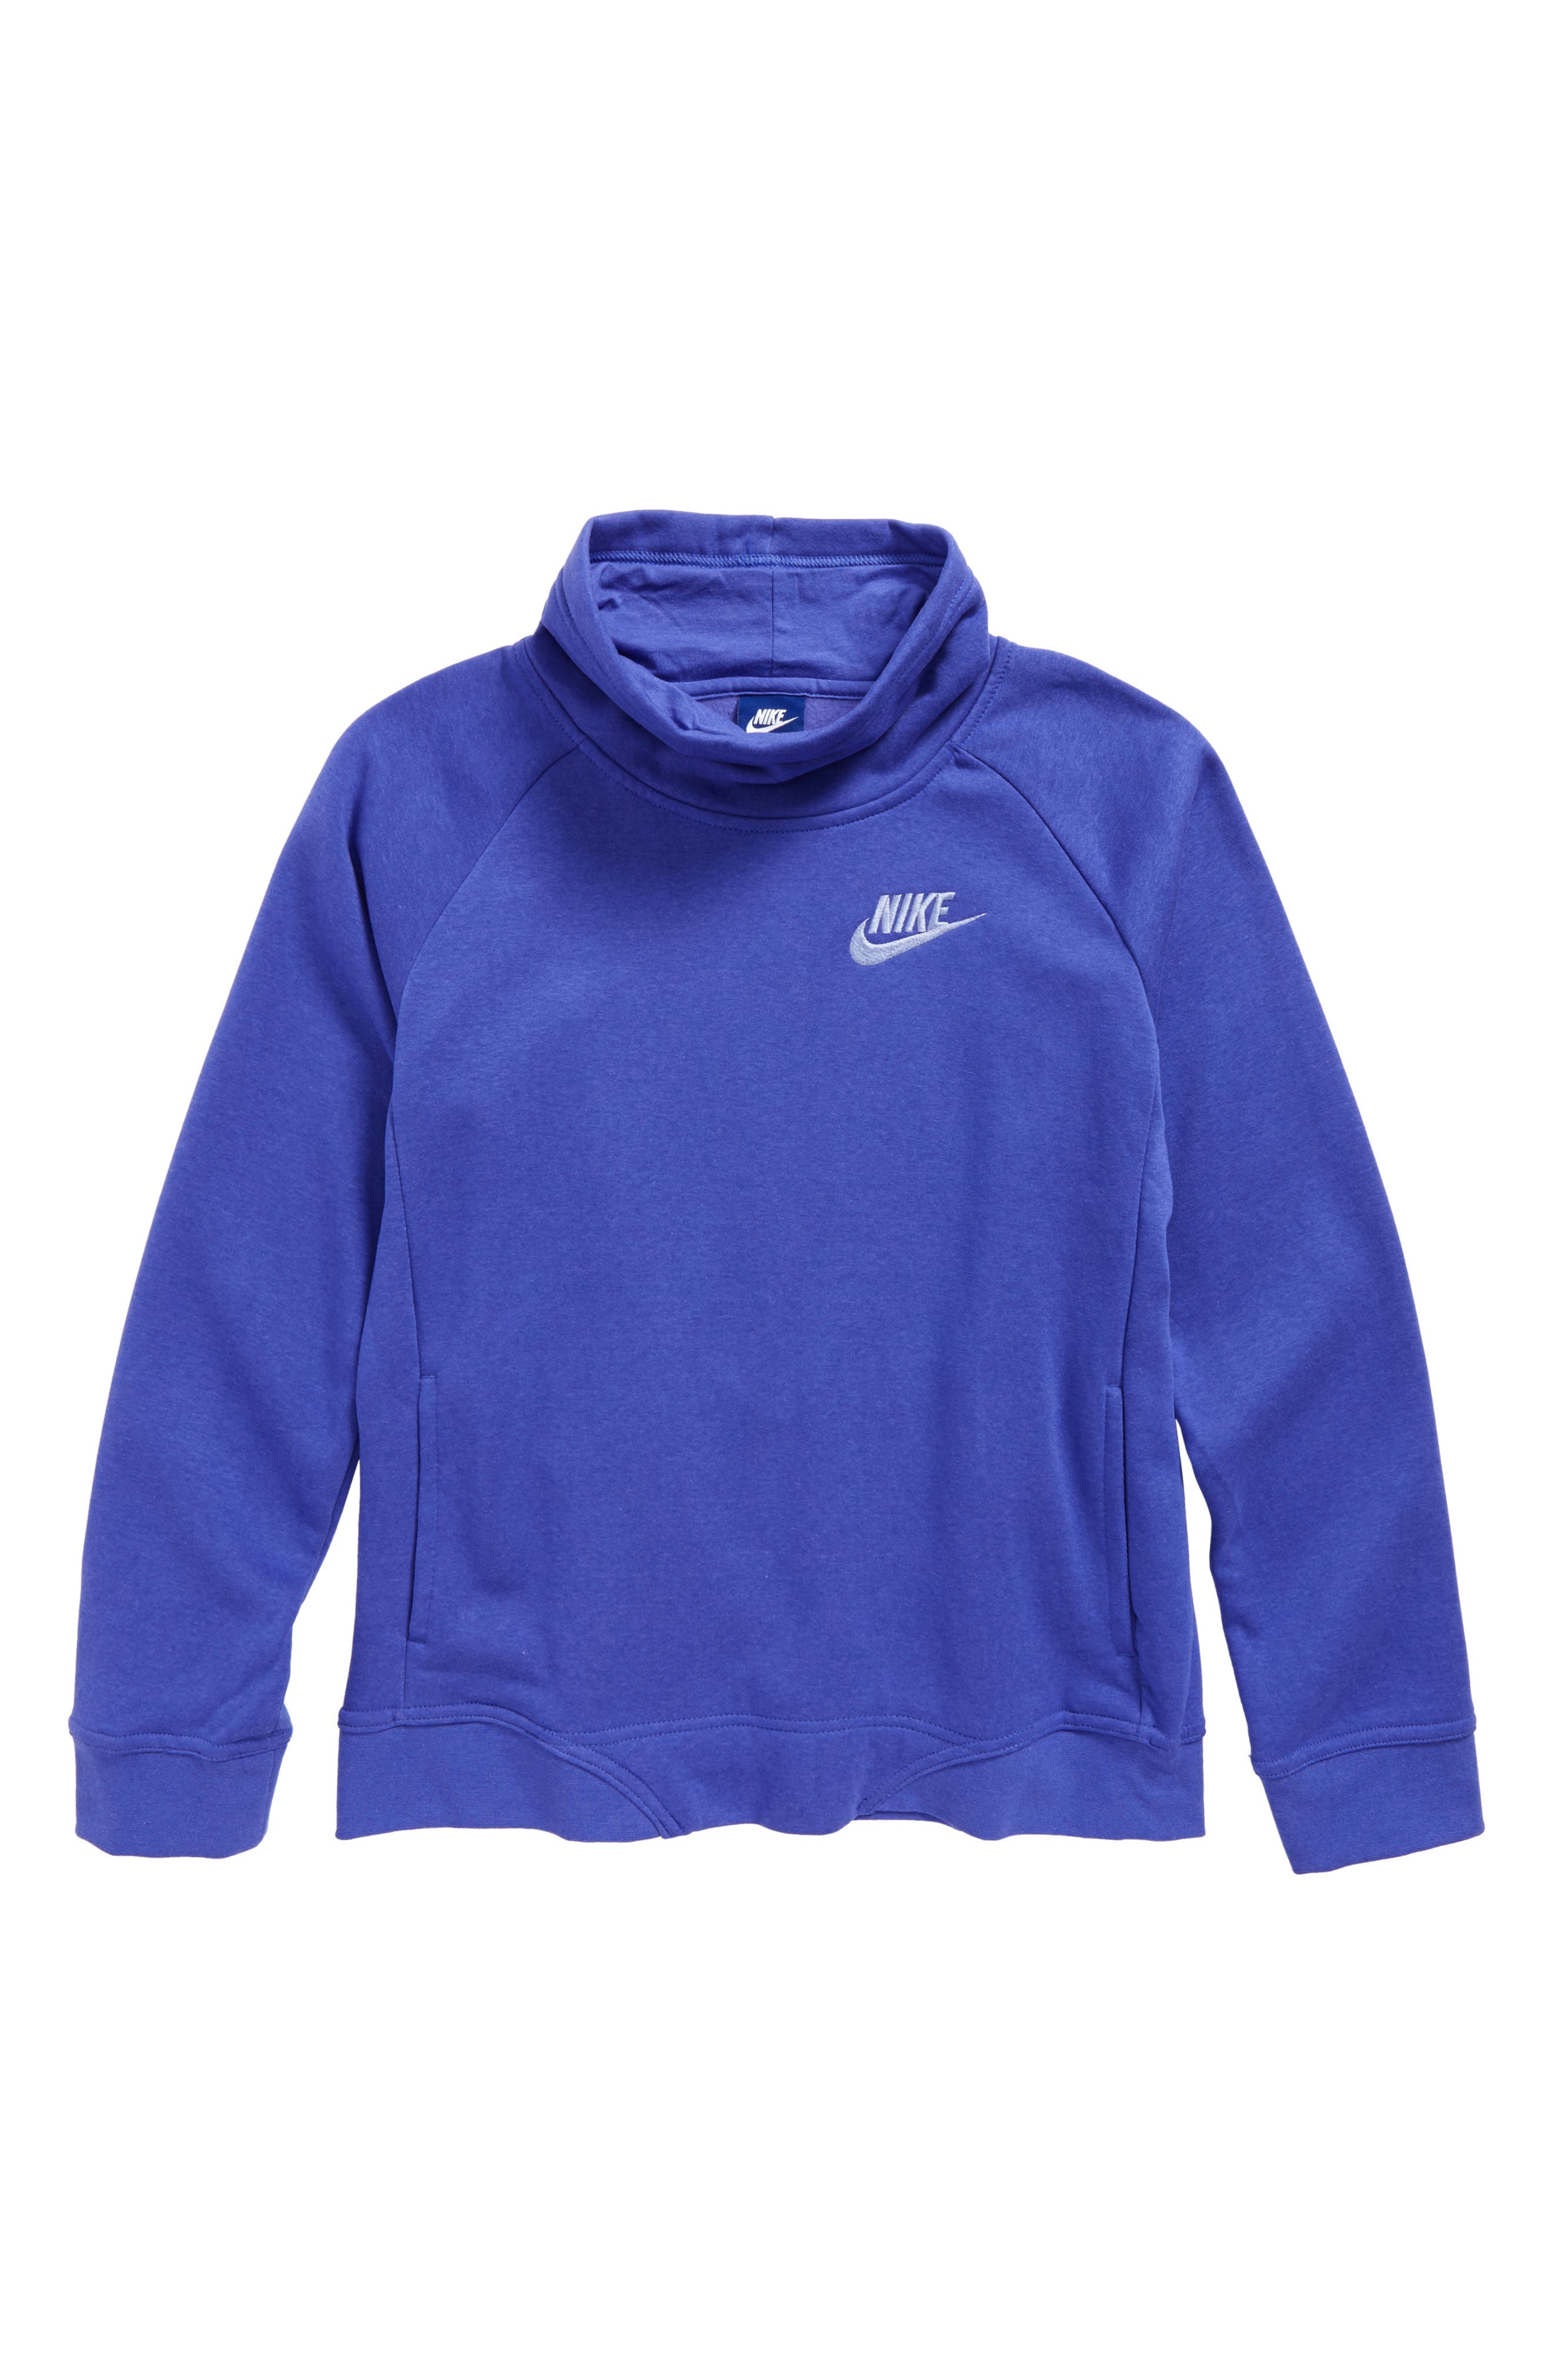 Long Sleeve Pullover,                         Main,                         color, Purple Comet/ Light Thistle